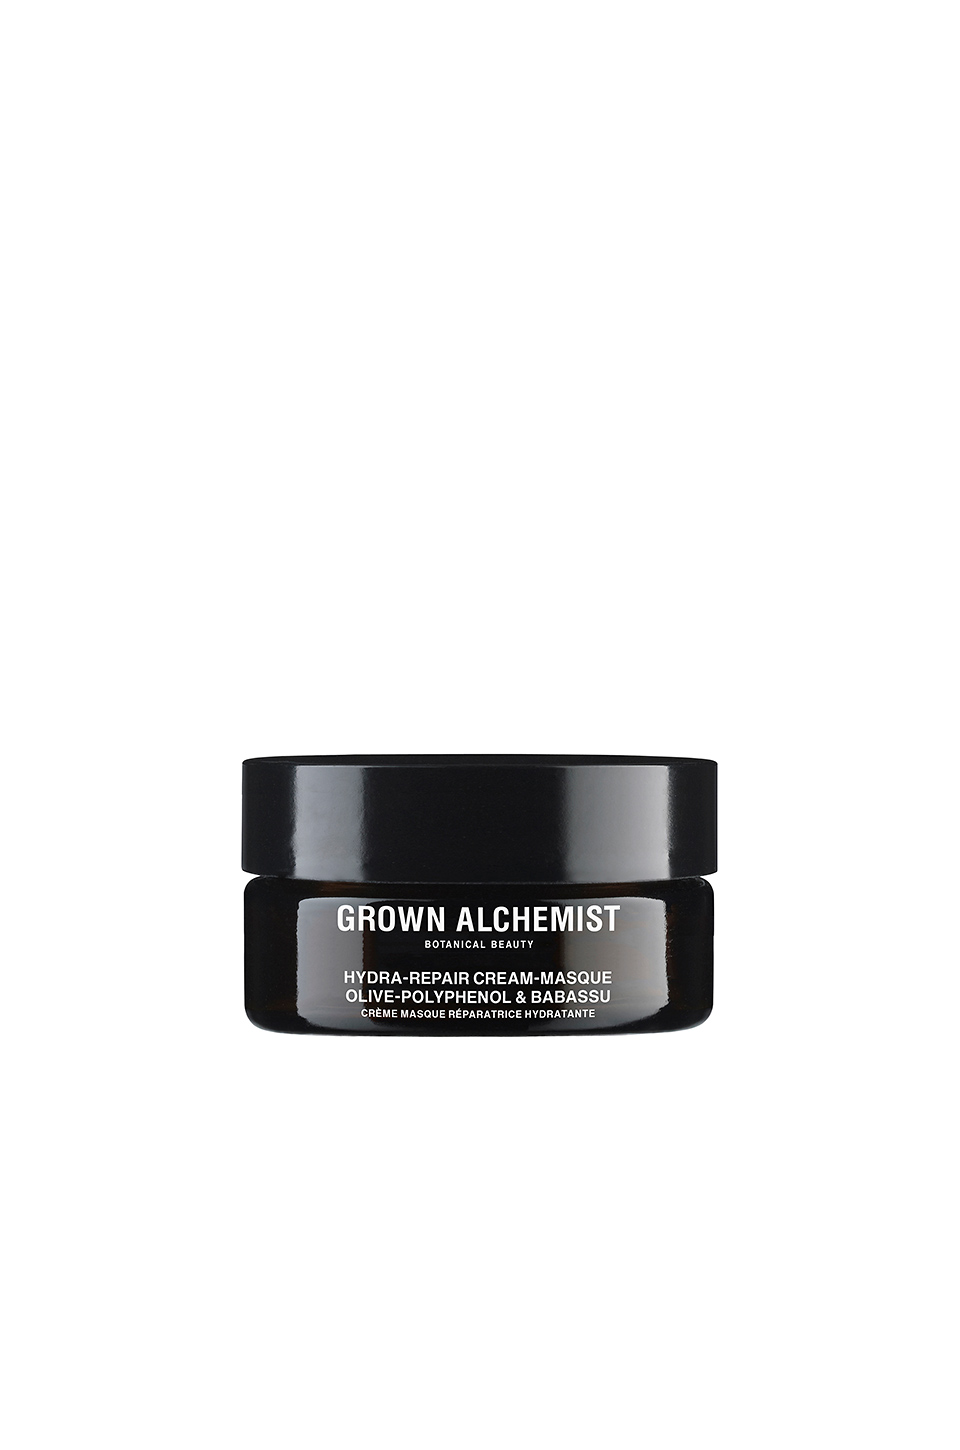 Grown Alchemist Hydra-Repair Cream-Mask Olive-Polyphenol & Cupuacu Butter in